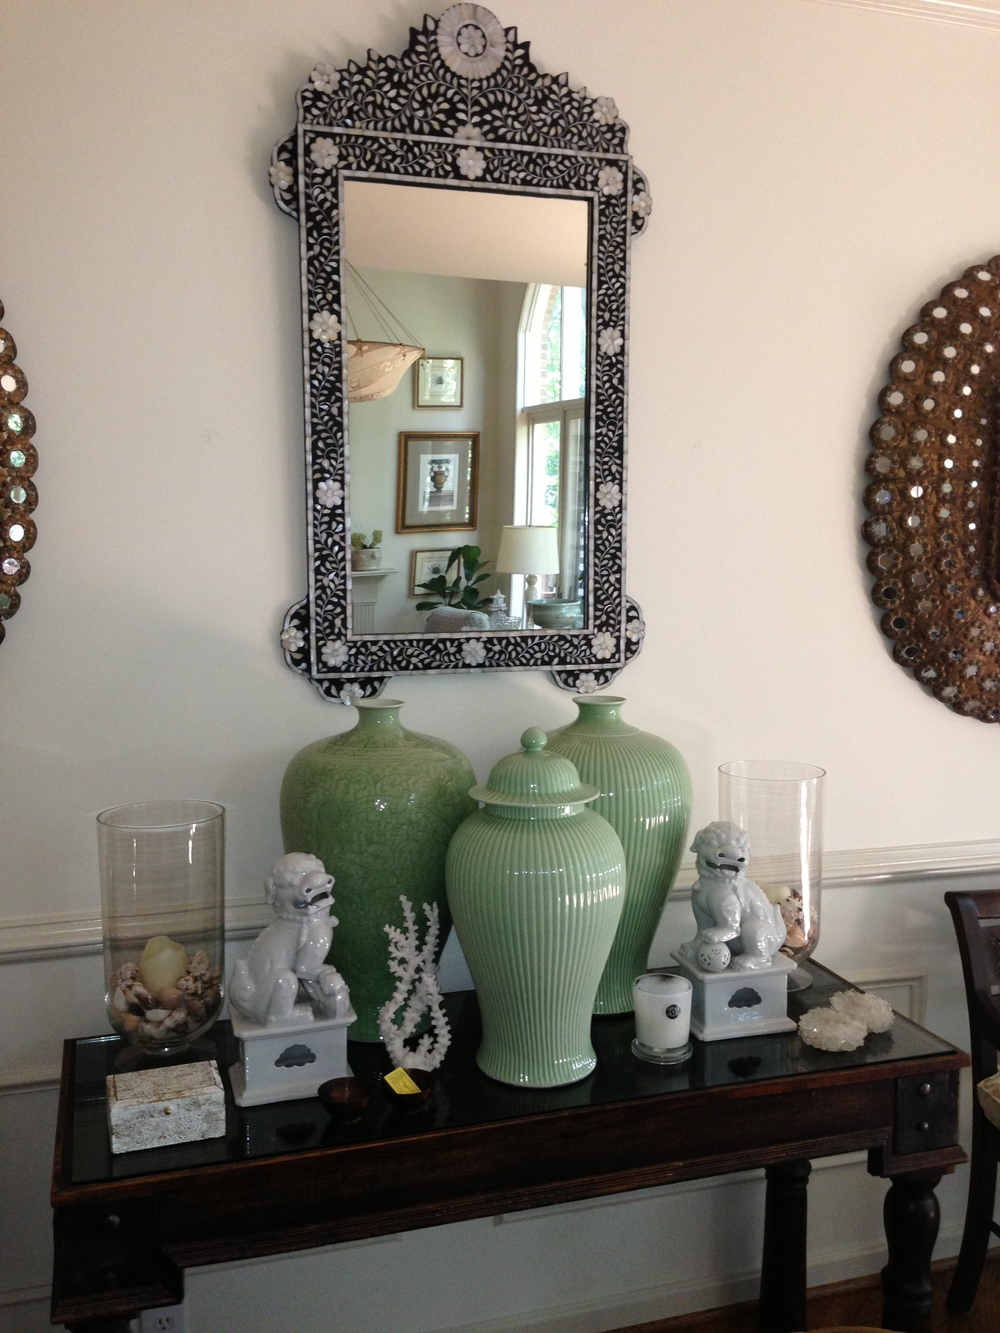 Entrance way with green vases, ornate mirror, miniature statues; Designed by Washington DC interior designer Decor Dose on Fortique